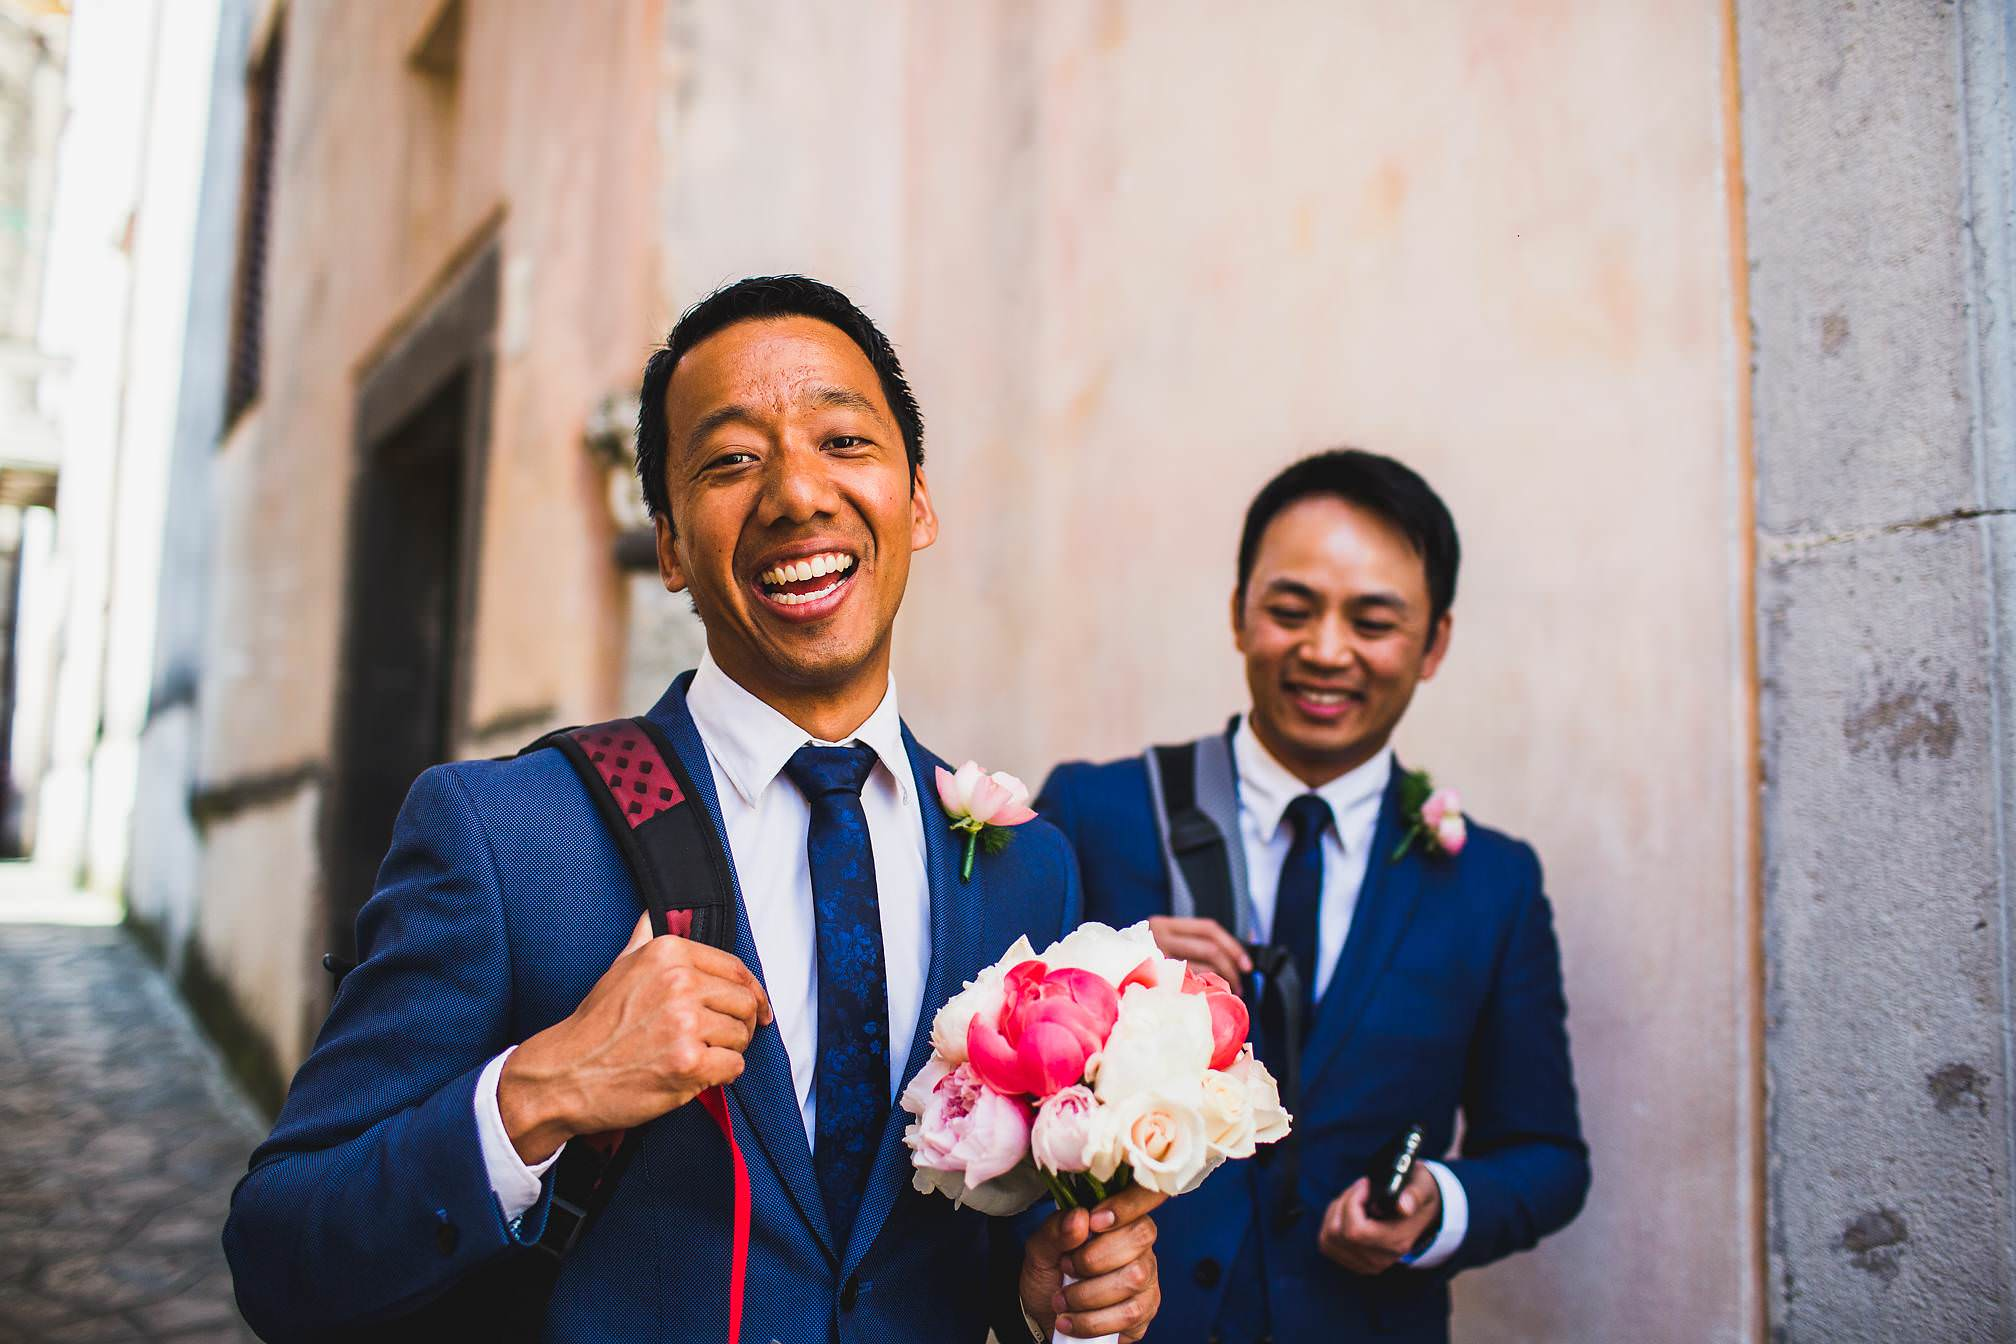 Groomsman laughing and smiling